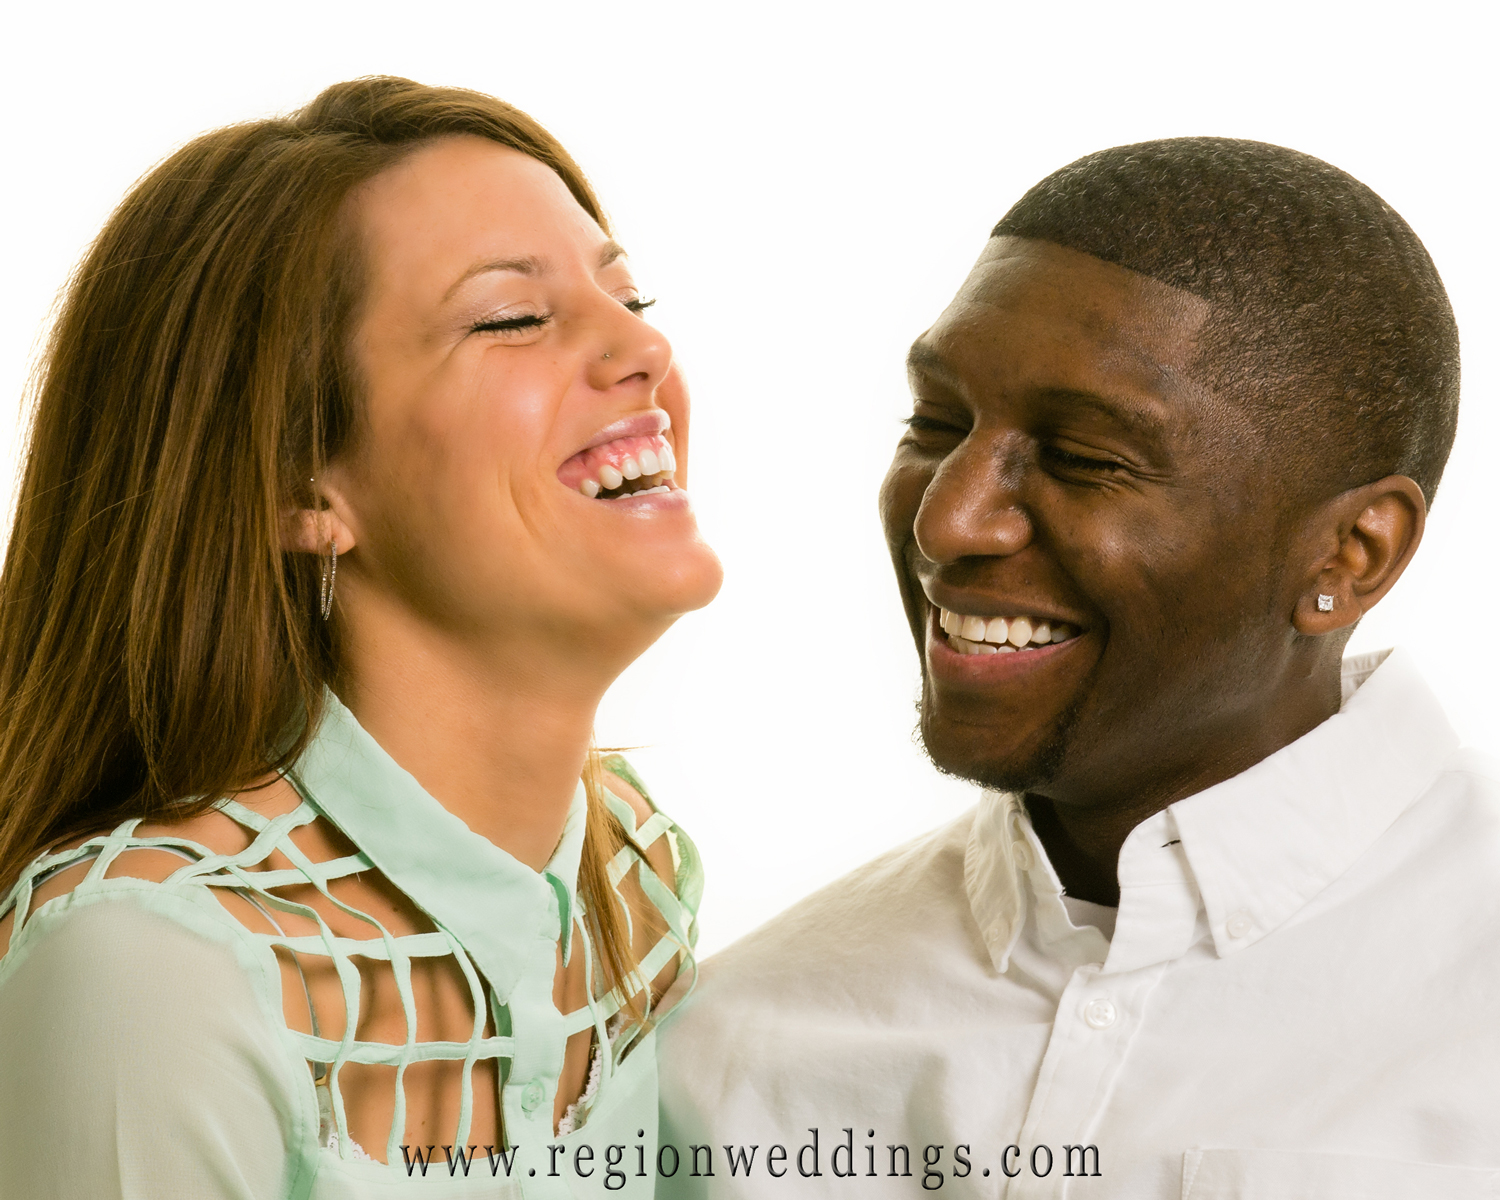 An engaged couple in a natural looking studio portrait laughing and having fun.